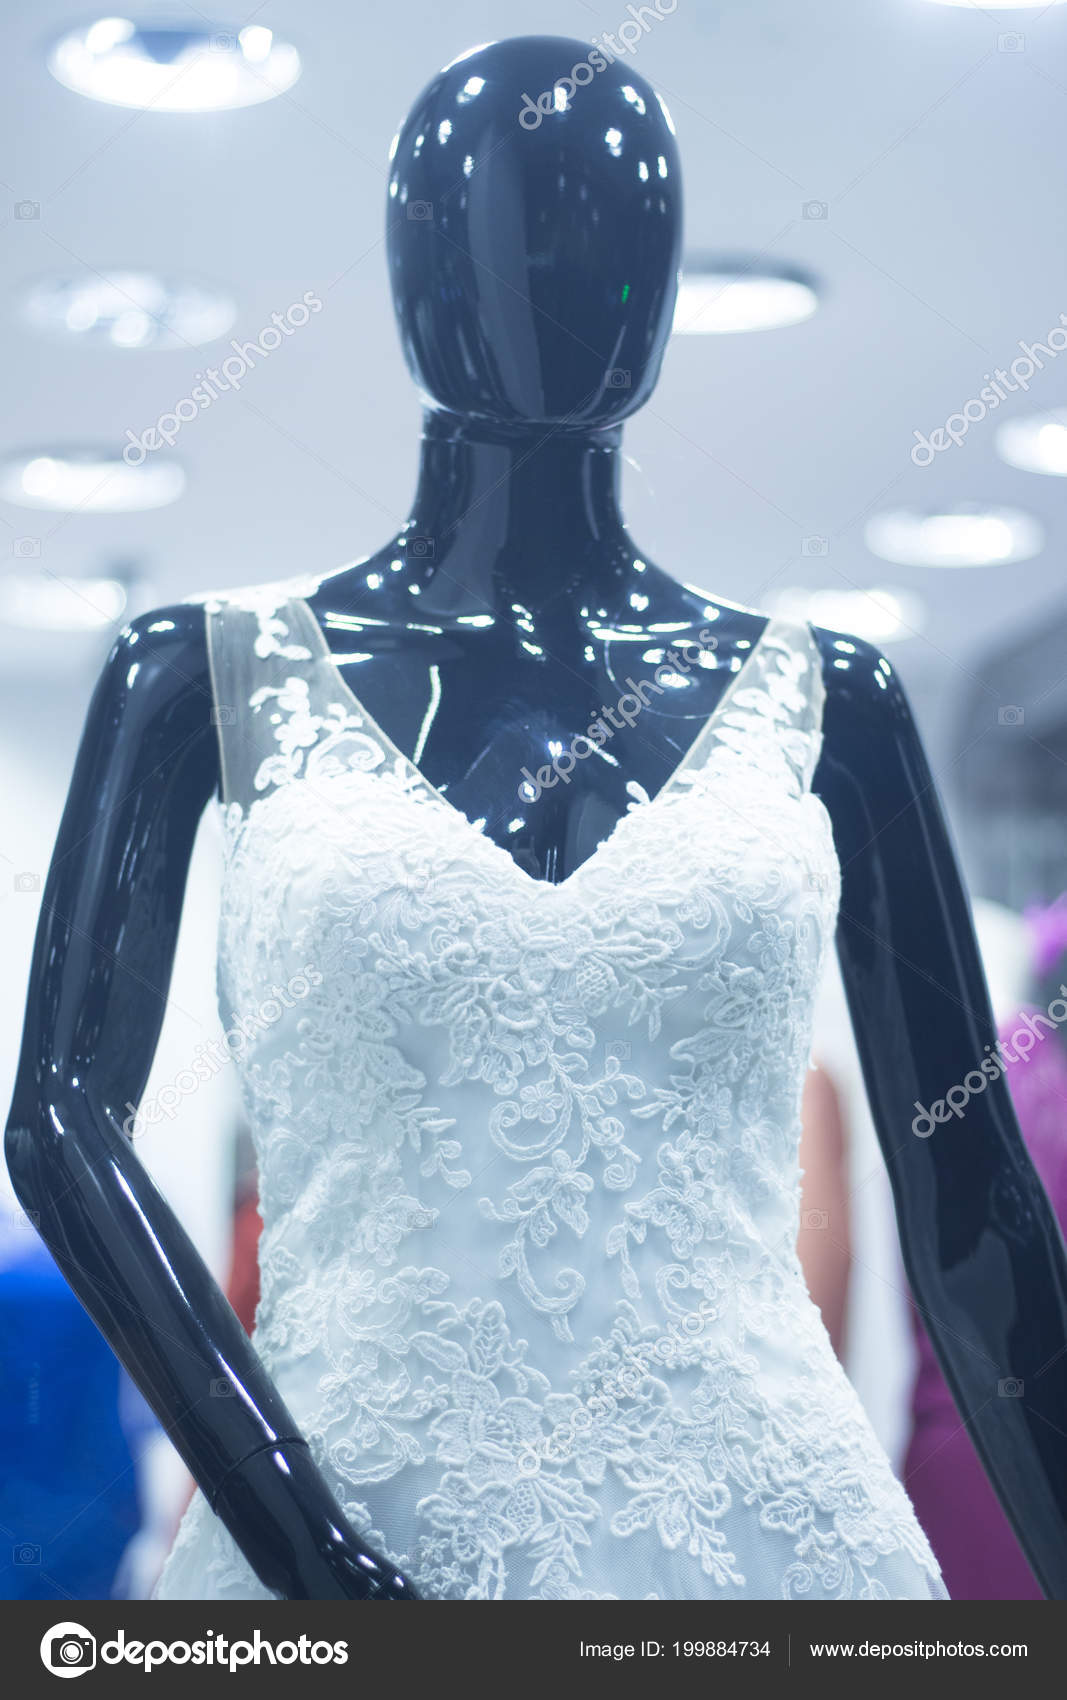 ce75dc2a1614 Bridal Shop Dummy Bride Mannequin Department Store White Wedding Dress–  stock image